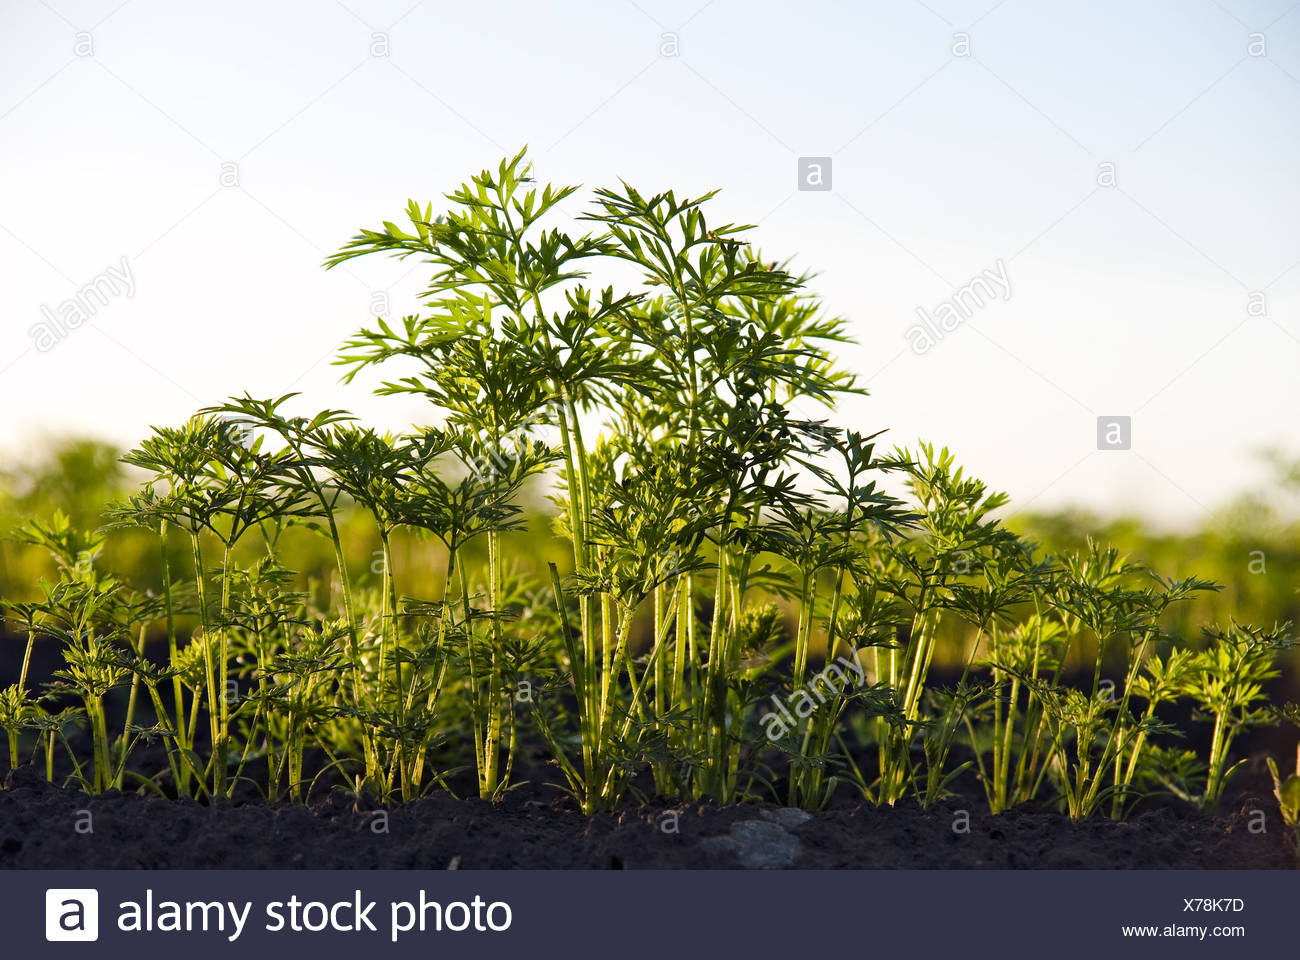 Carrot herb of the field - Stock Image